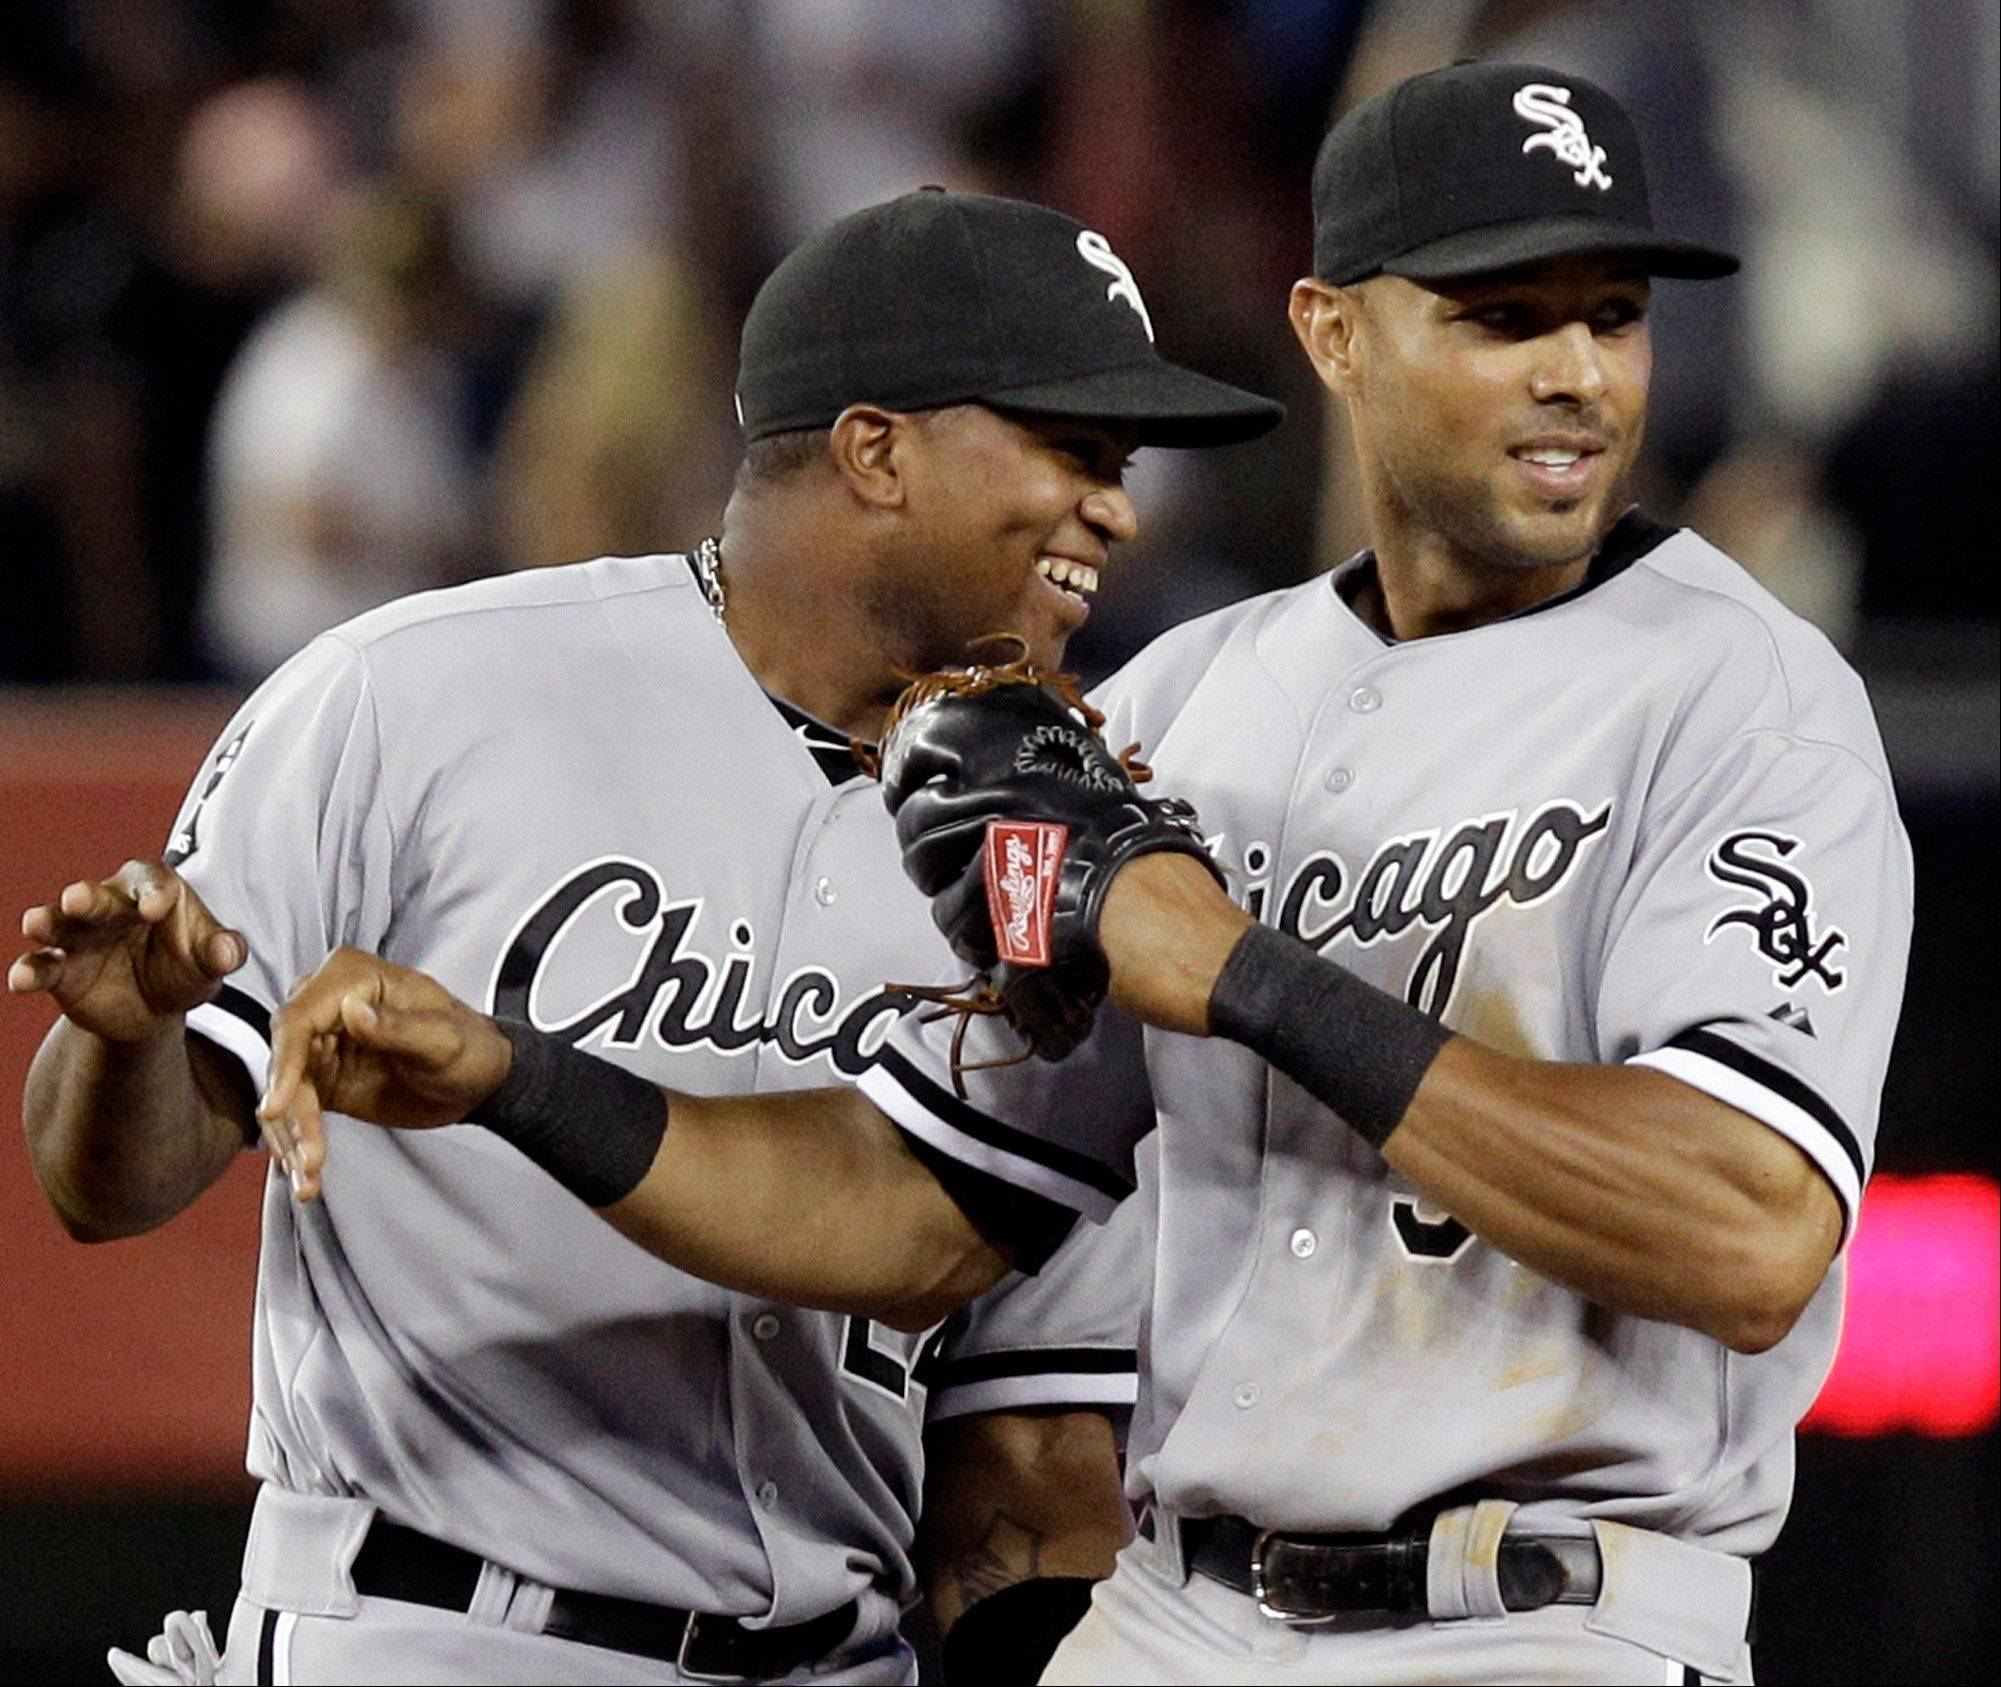 White Sox left fielder Dayan Viciedo, left, and right fielder Alex Rios celebrate after defeating the New York Yankees 4-3 at Yankee Stadium in New York.